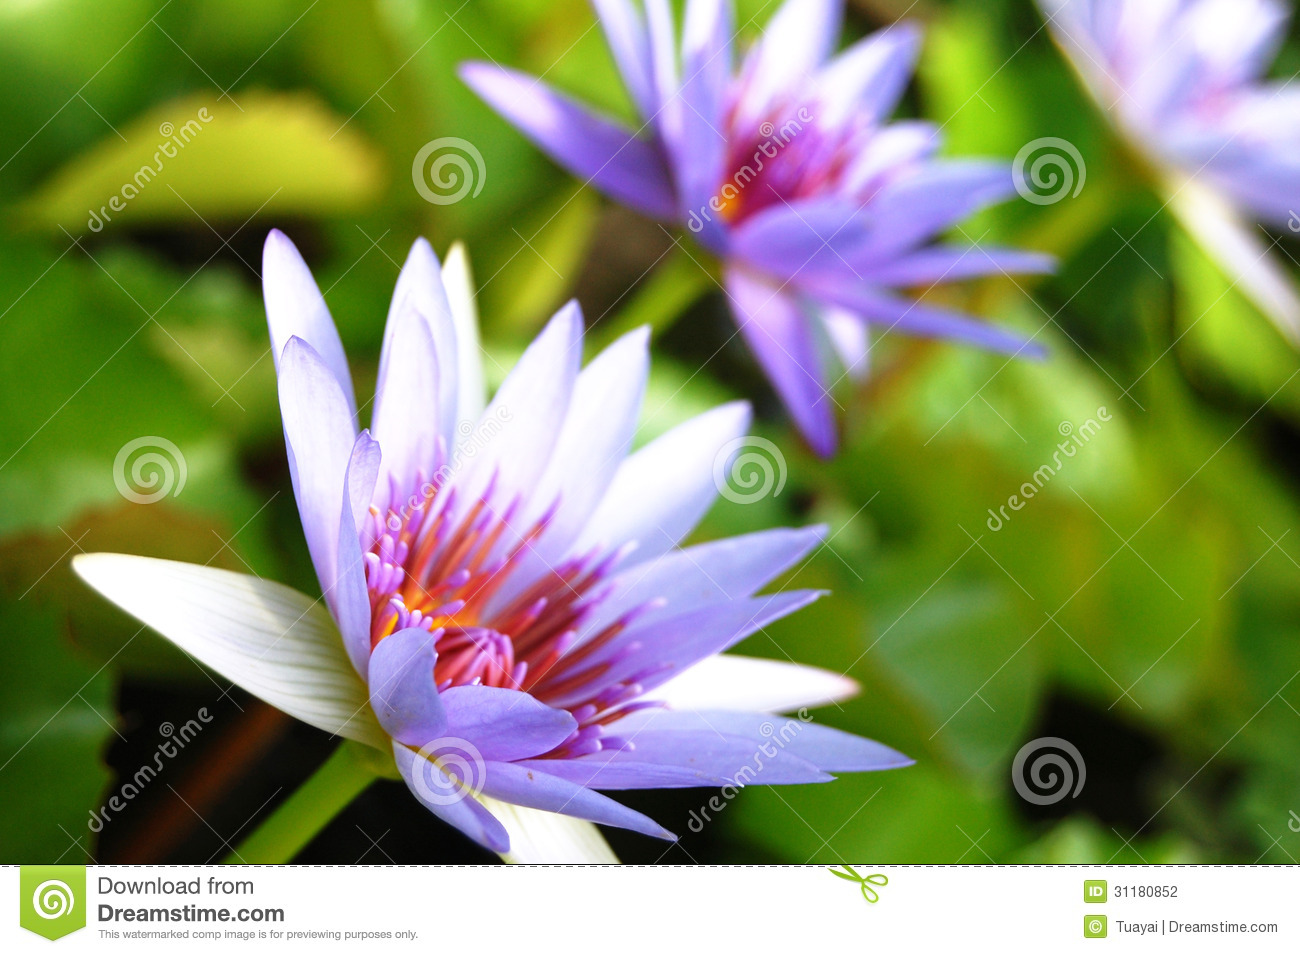 Pin Lotus Flower Meaning Significance on Pinterest